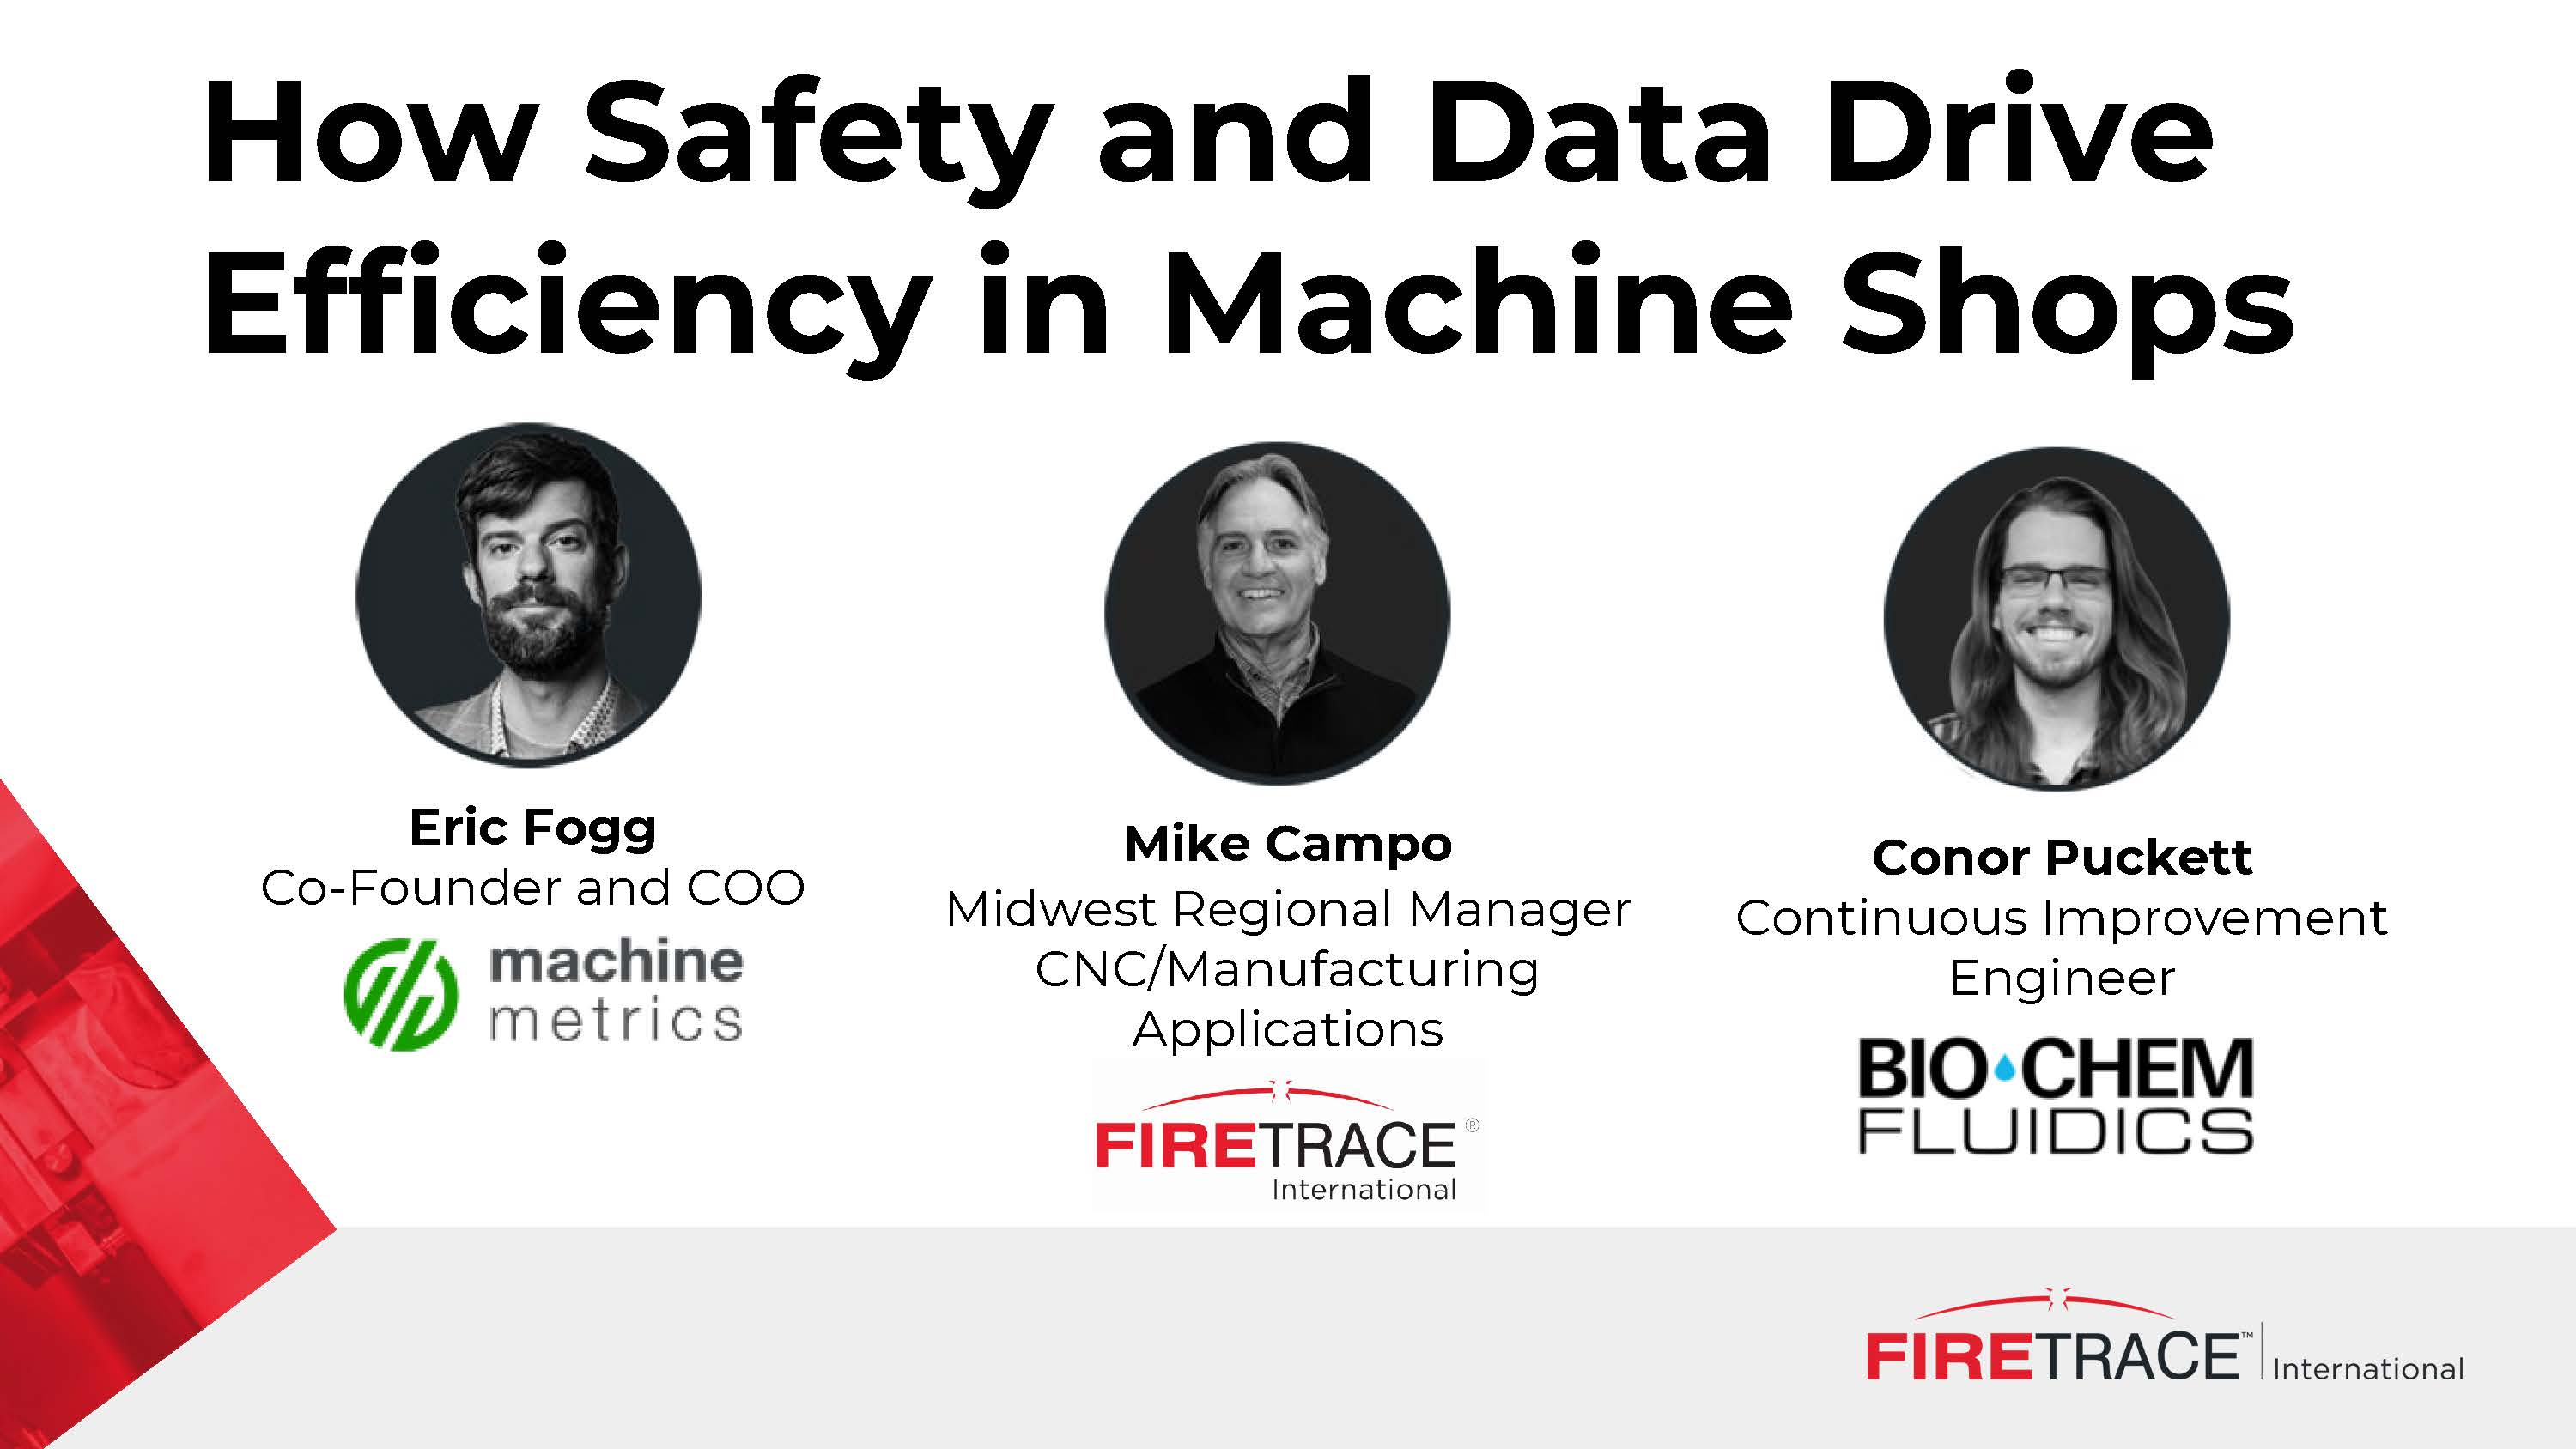 How Safety and Data Drive Efficiency in Machine Shops